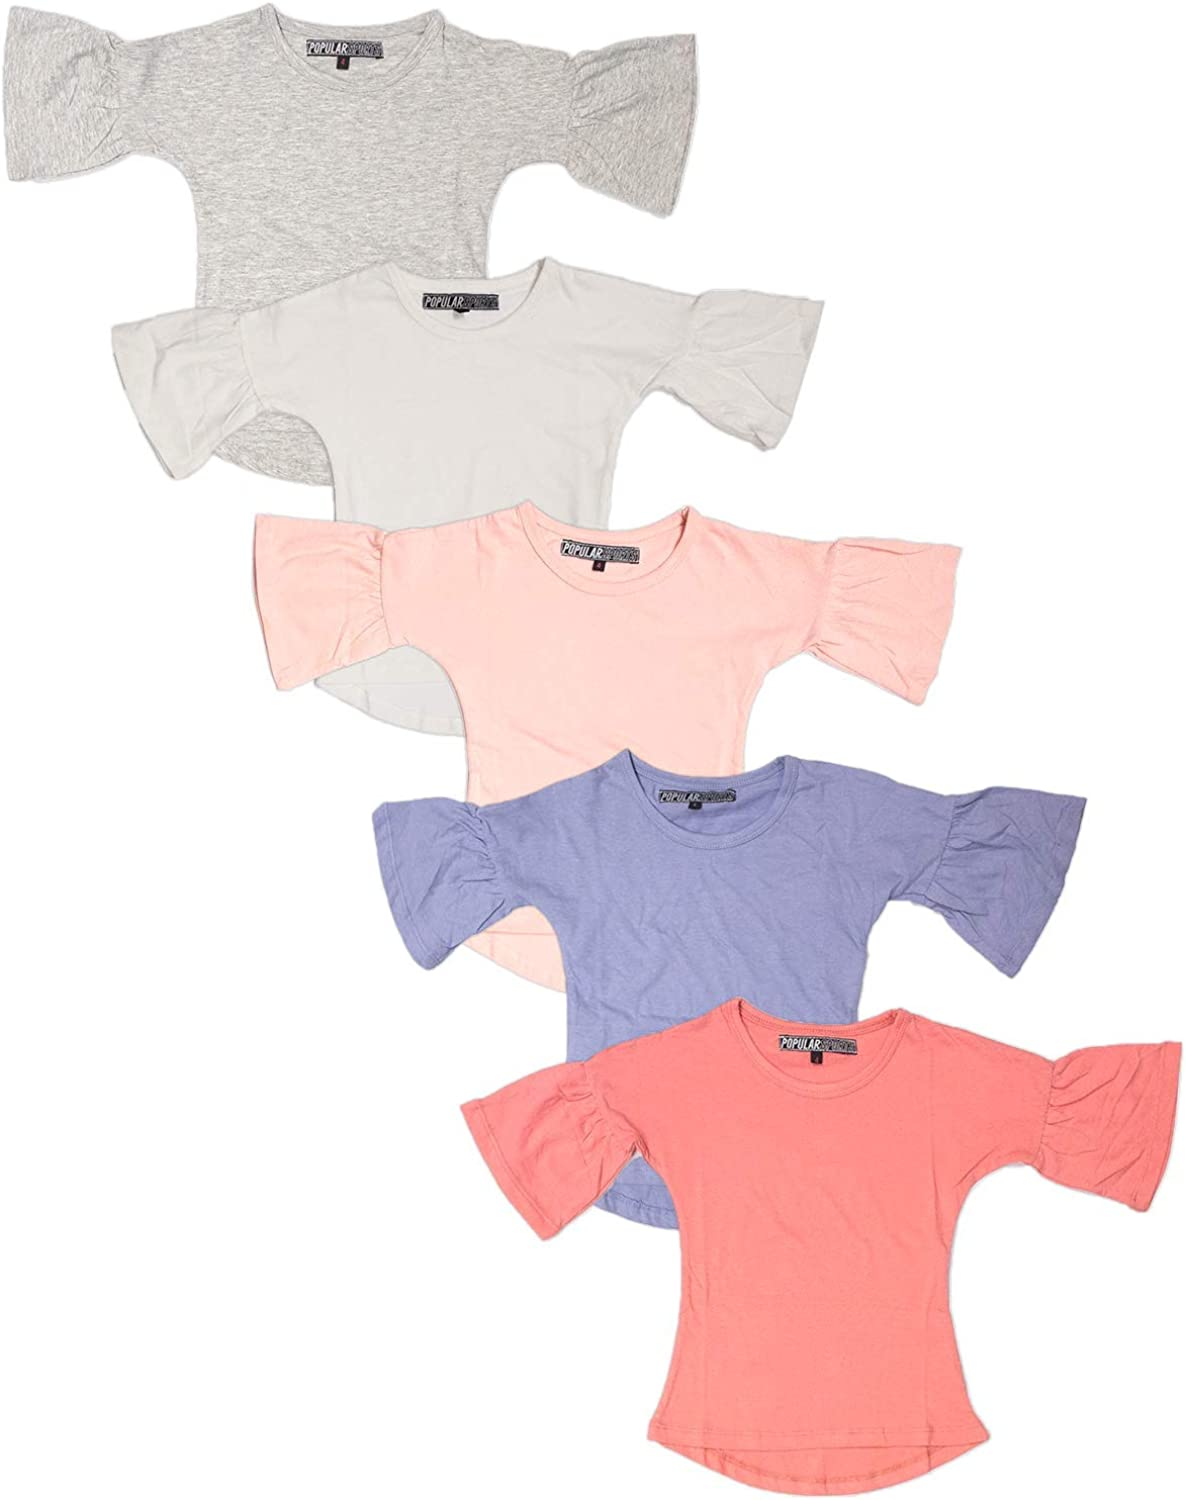 Girls 5 Pack Short Sleeve T Shirt with Ruffle Sleeve Design Size 4-6X Fashion Top for Girls